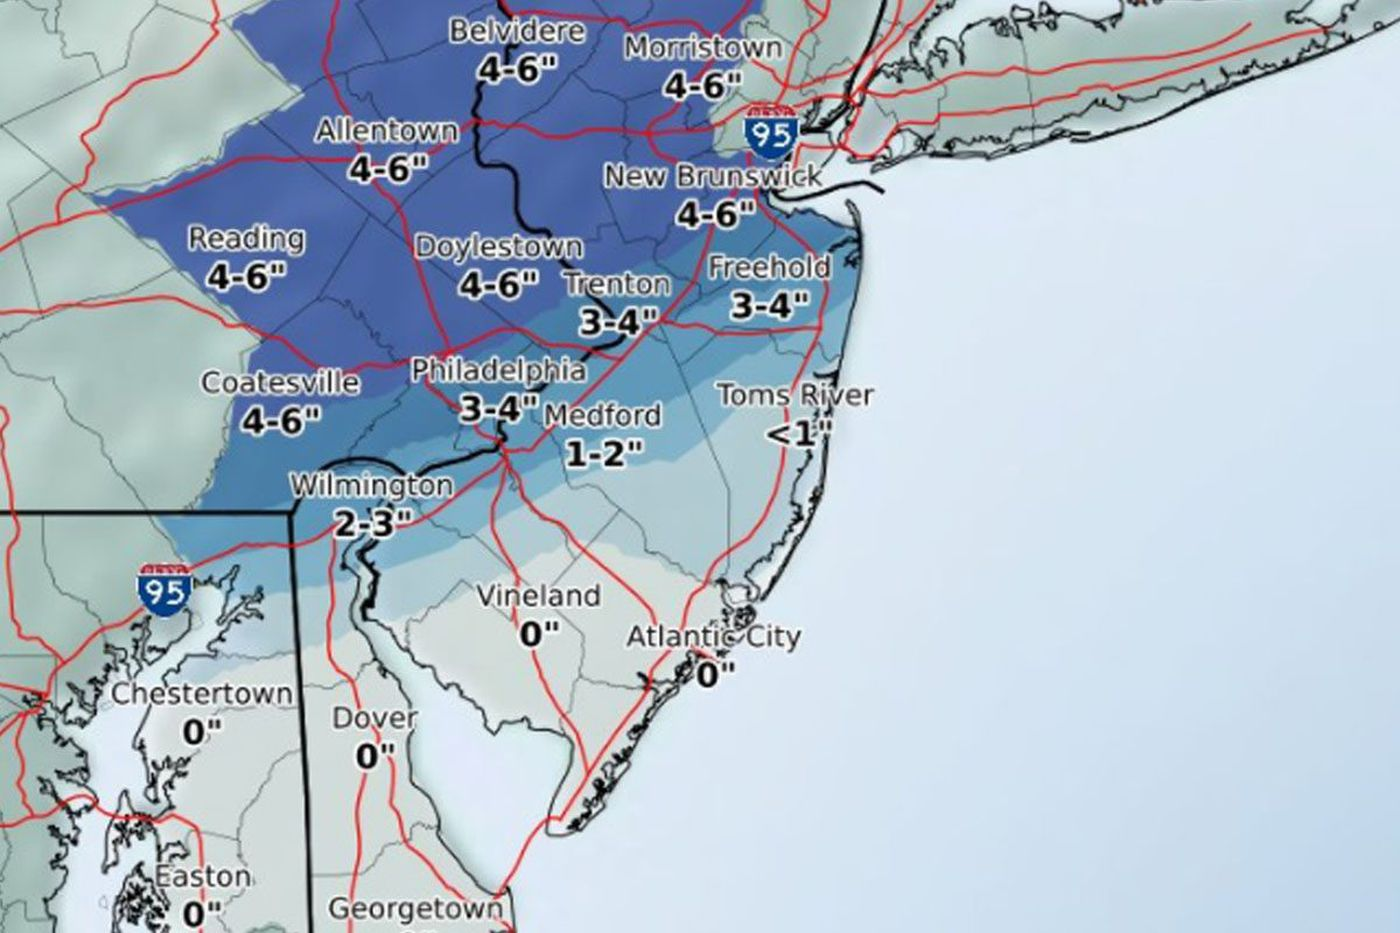 After snowfall, record-breaking warmth could be on the way